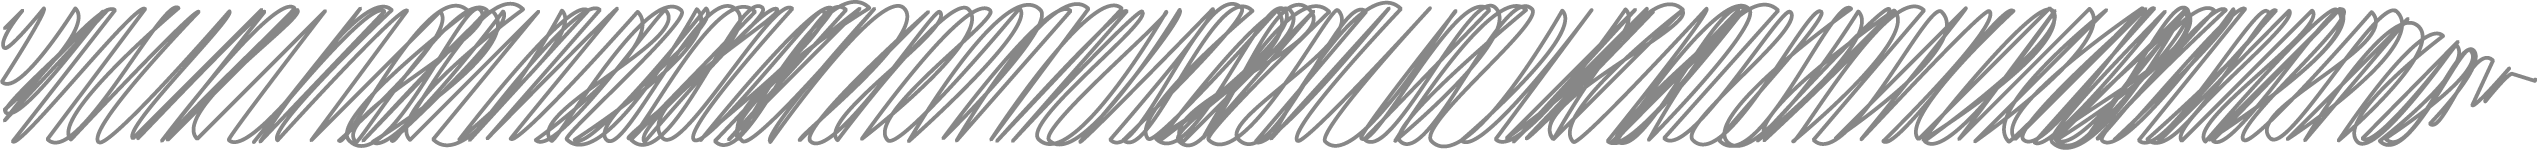 Scribble line png. Index of downloads resources